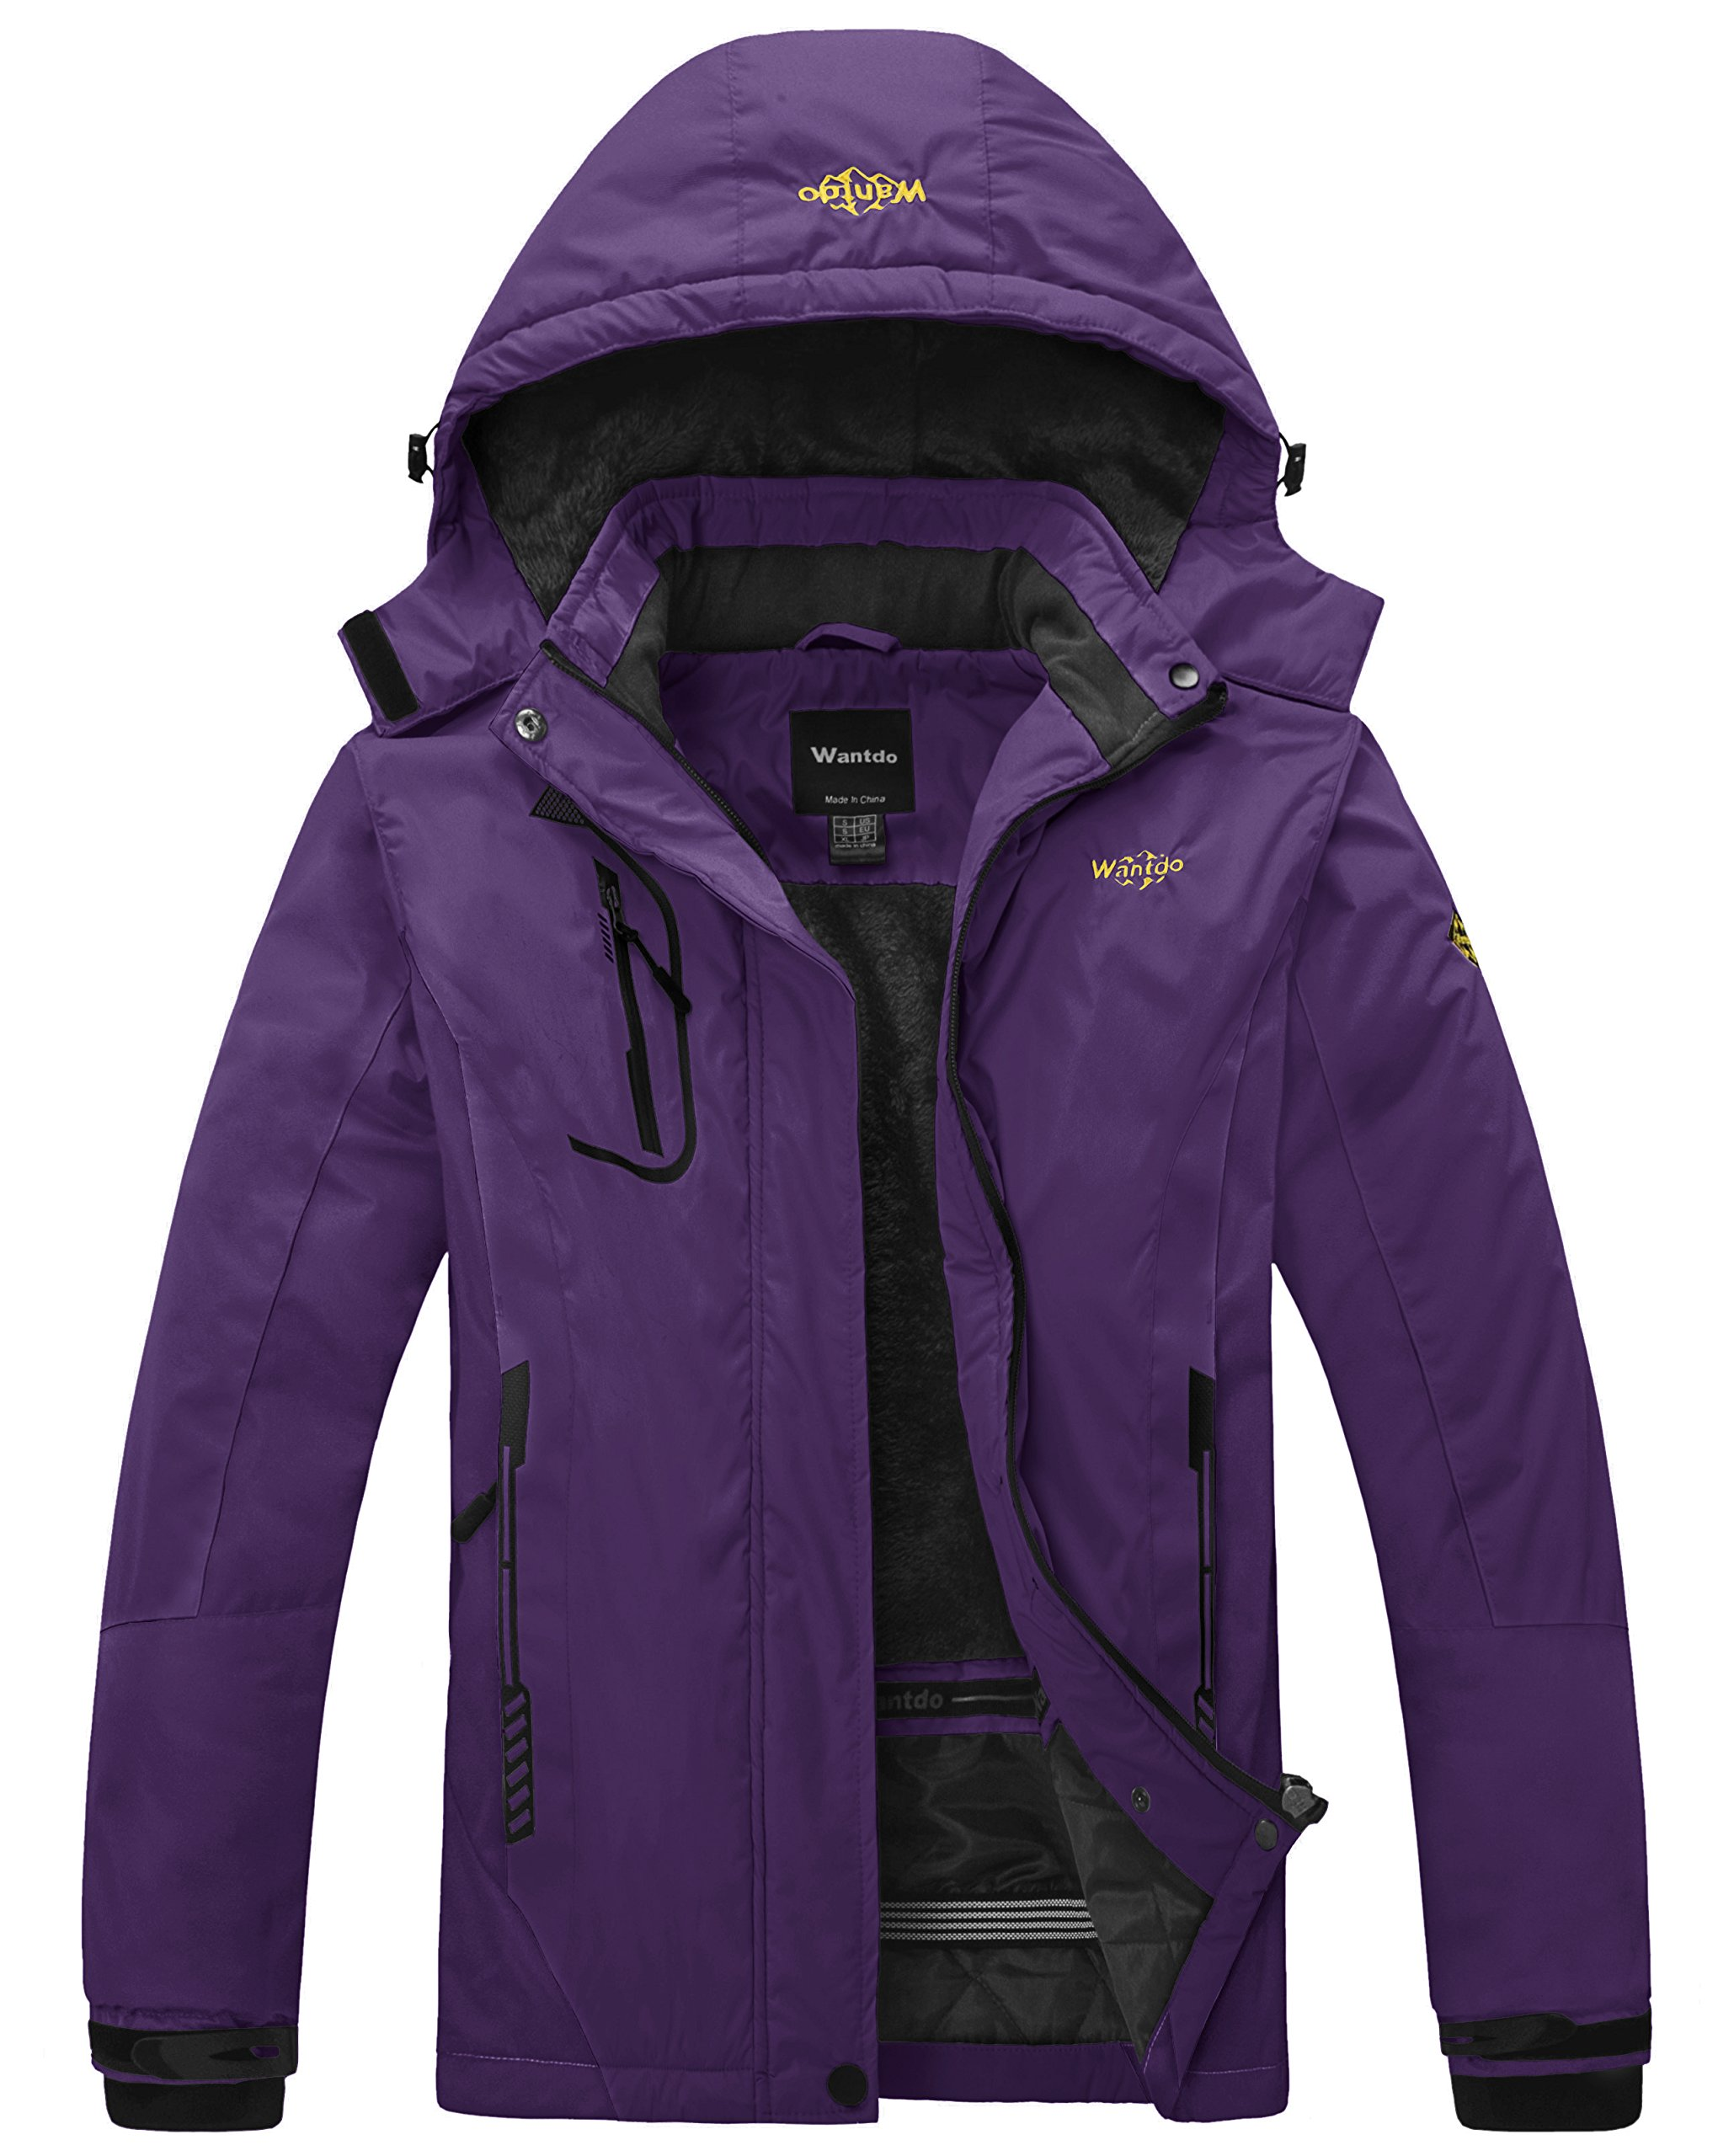 Wantdo Women's Waterproof Mountain Jacket Fleece Windproof Ski Jacket Outdoor Jacket Dark Purple Small by Wantdo